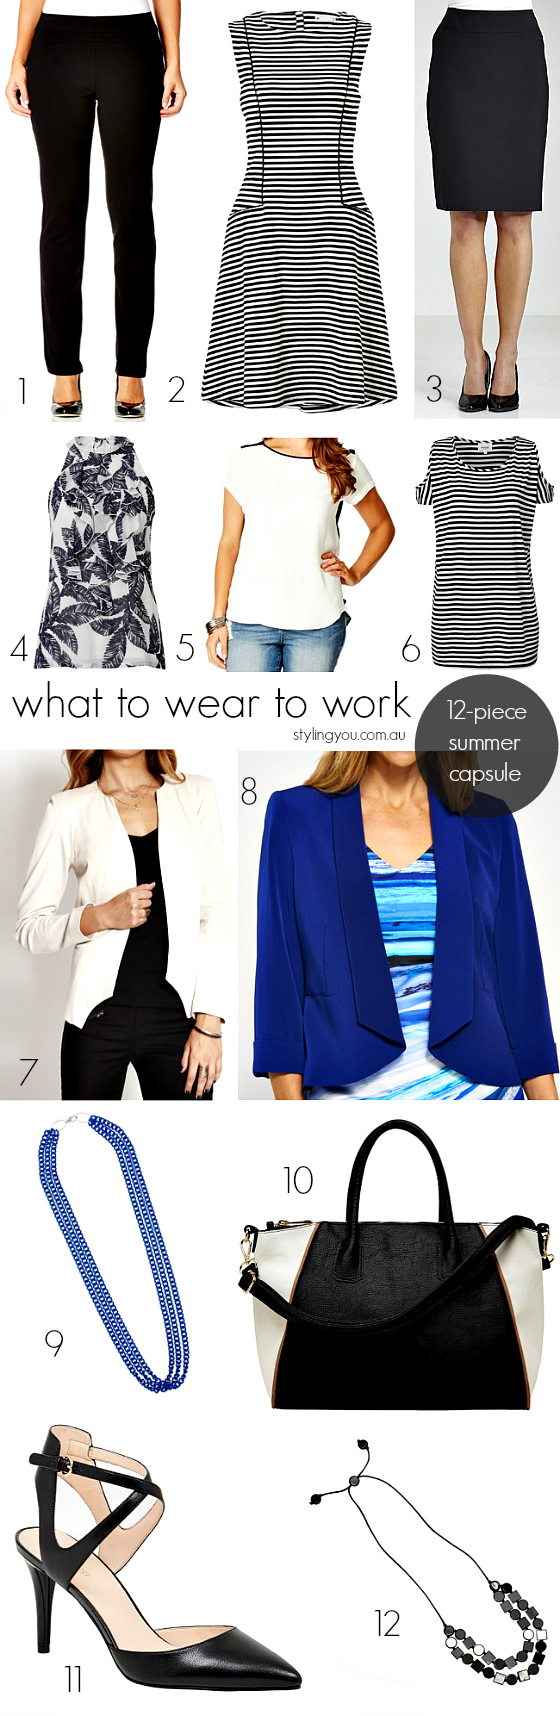 What to wear to work - summer  12-piece capsule wardrobe